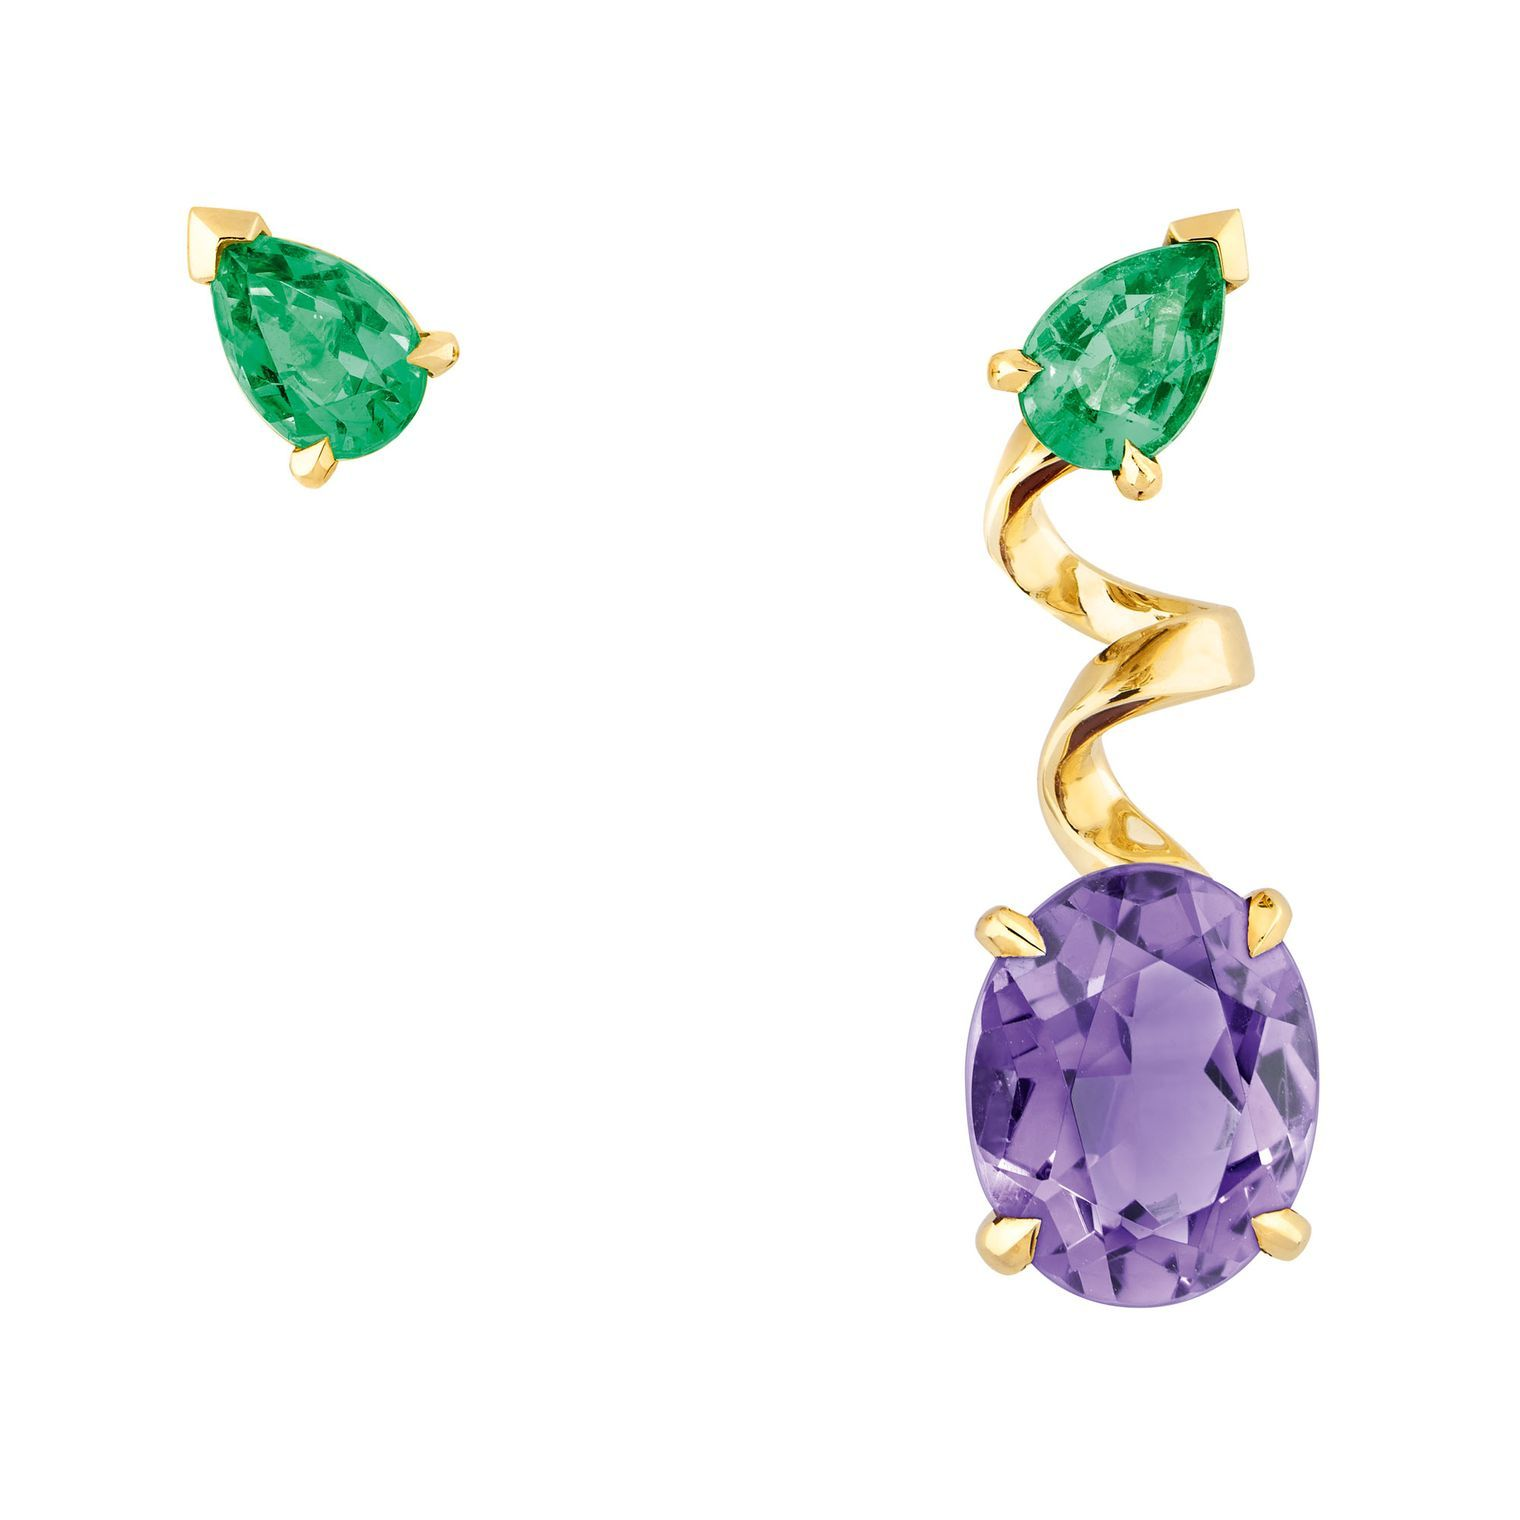 A striking colour combination made even more daring by the mismatched design, these Diorama Précieuse earrings by @dior are the cool way to wear the asymmetric trend. Two pear-cut #emeralds are held in place by bold yellow gold claws, with one #earring spiralling downwards in a twirl of gold to meet an oval-cut purple amethyst. Diorama Précieuse celebrates the modern beauty of asymmetry, with the gold designed to resemble an ornate ribbon - a nod to the couture creations of Christian Dior.